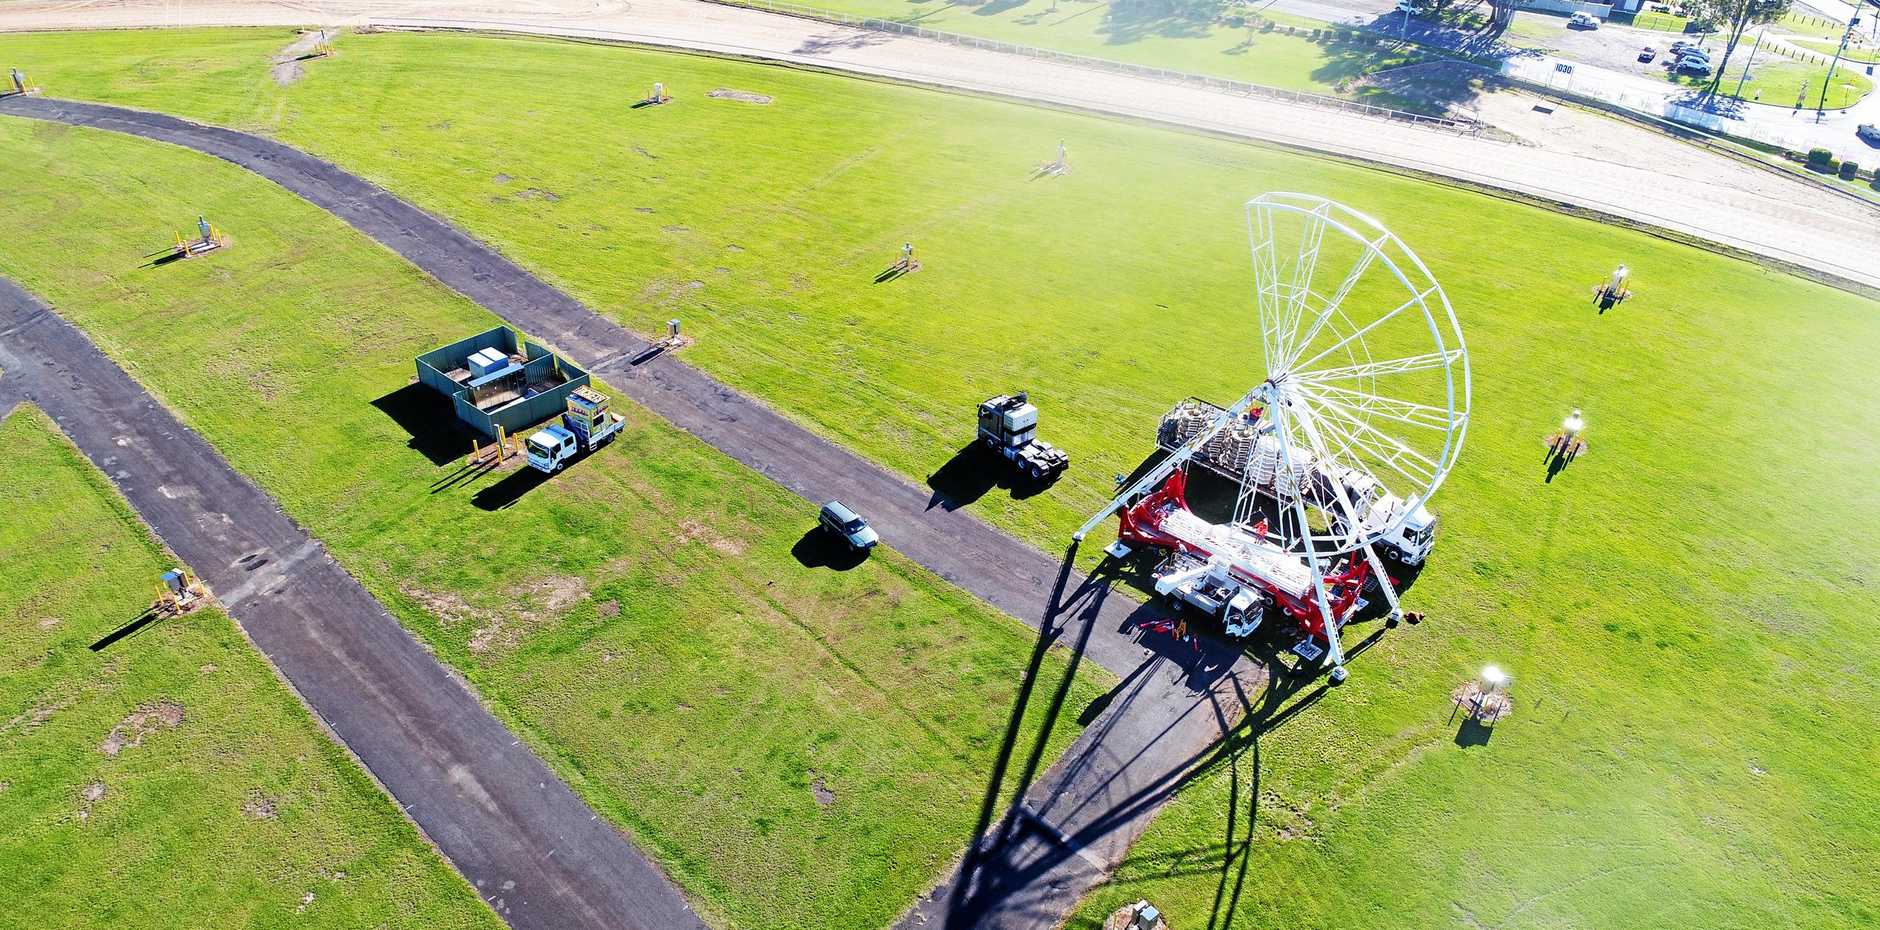 TAKING SHAPE: The ferris wheel takes shape at Gympie Showgrounds yesterday.